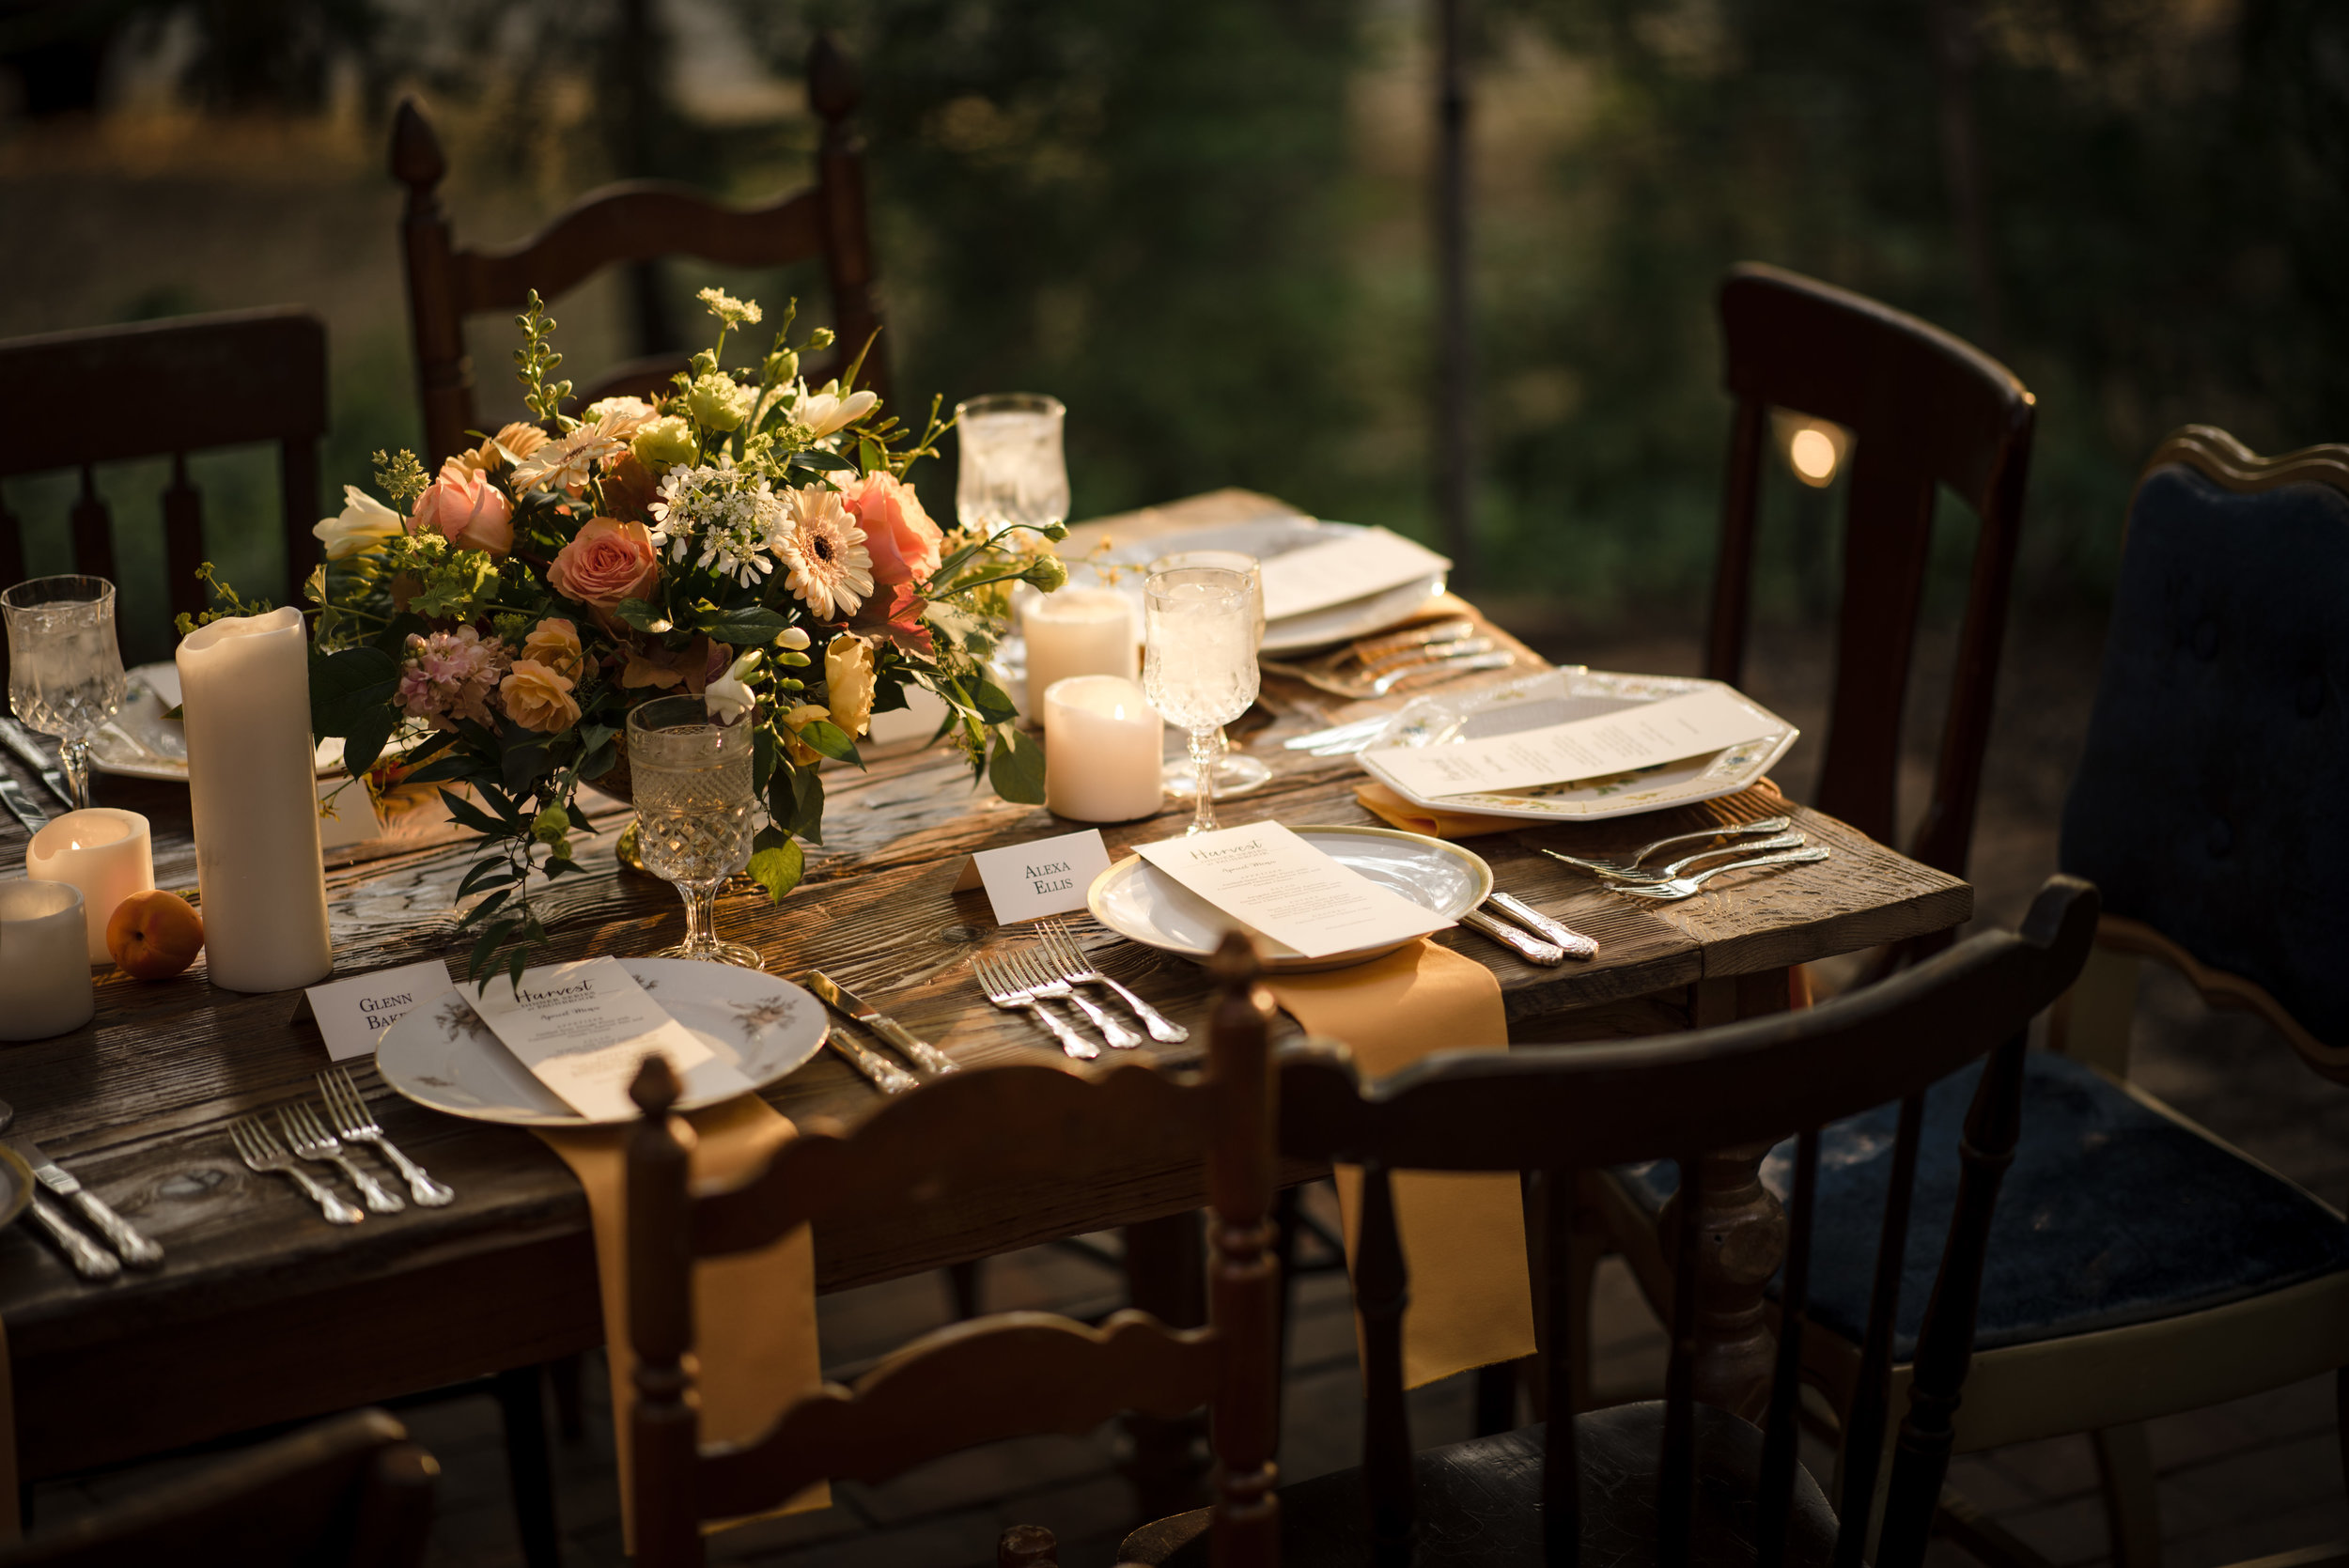 West-Chester-PA-Faunbrook-Harvest-Dinner-Series-Apricot-ChristieGreenPhotography-55.jpg